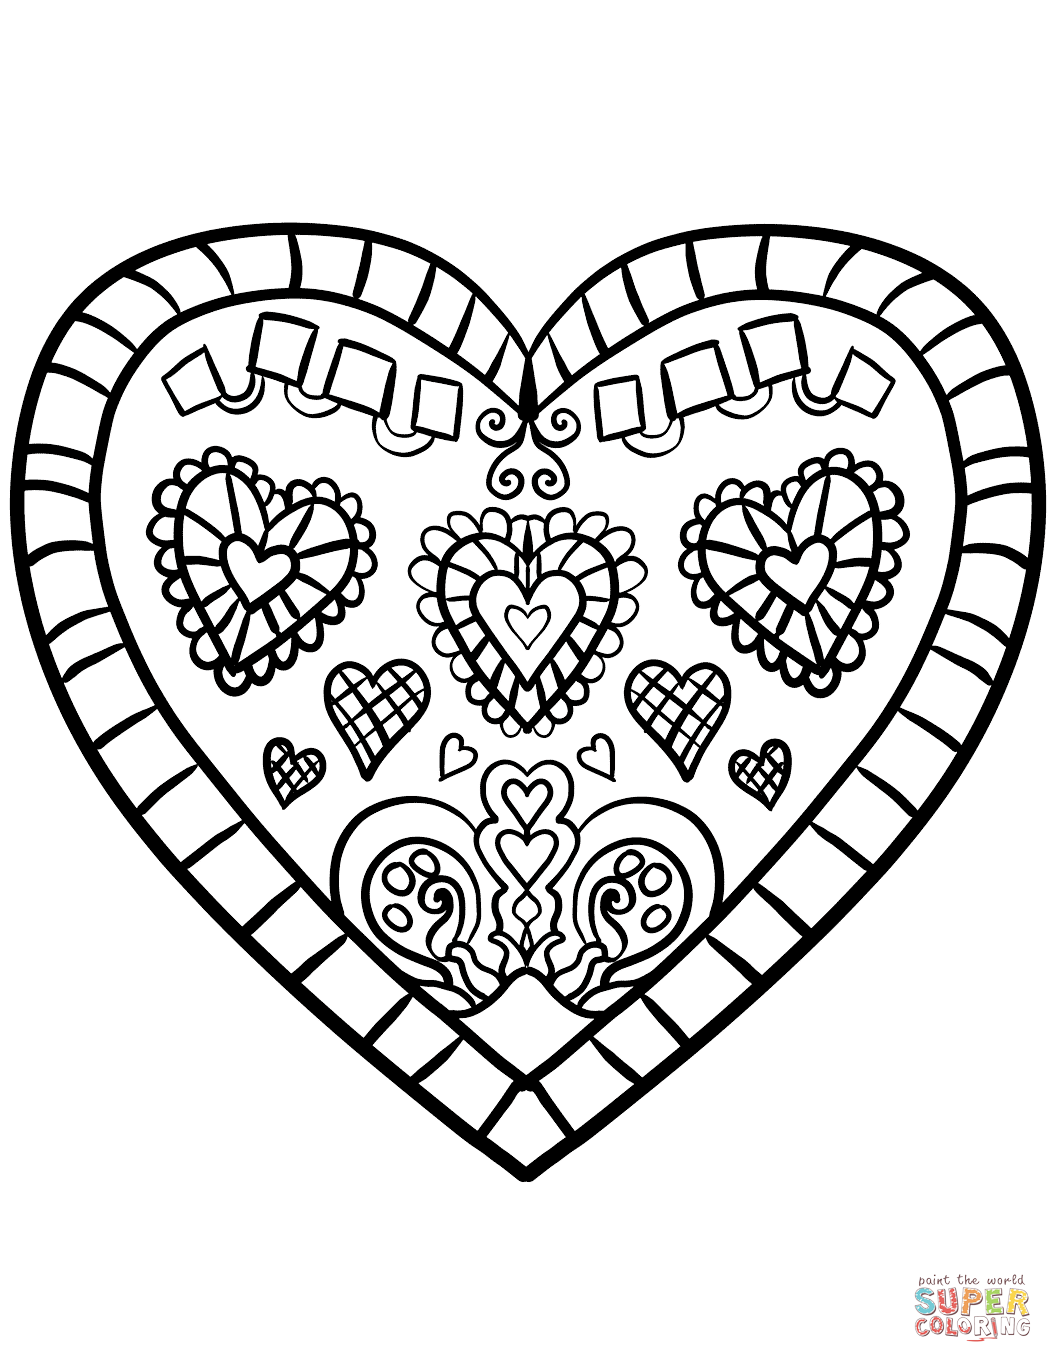 Valentines Coloring Pages   Free download best Valentines Coloring ...